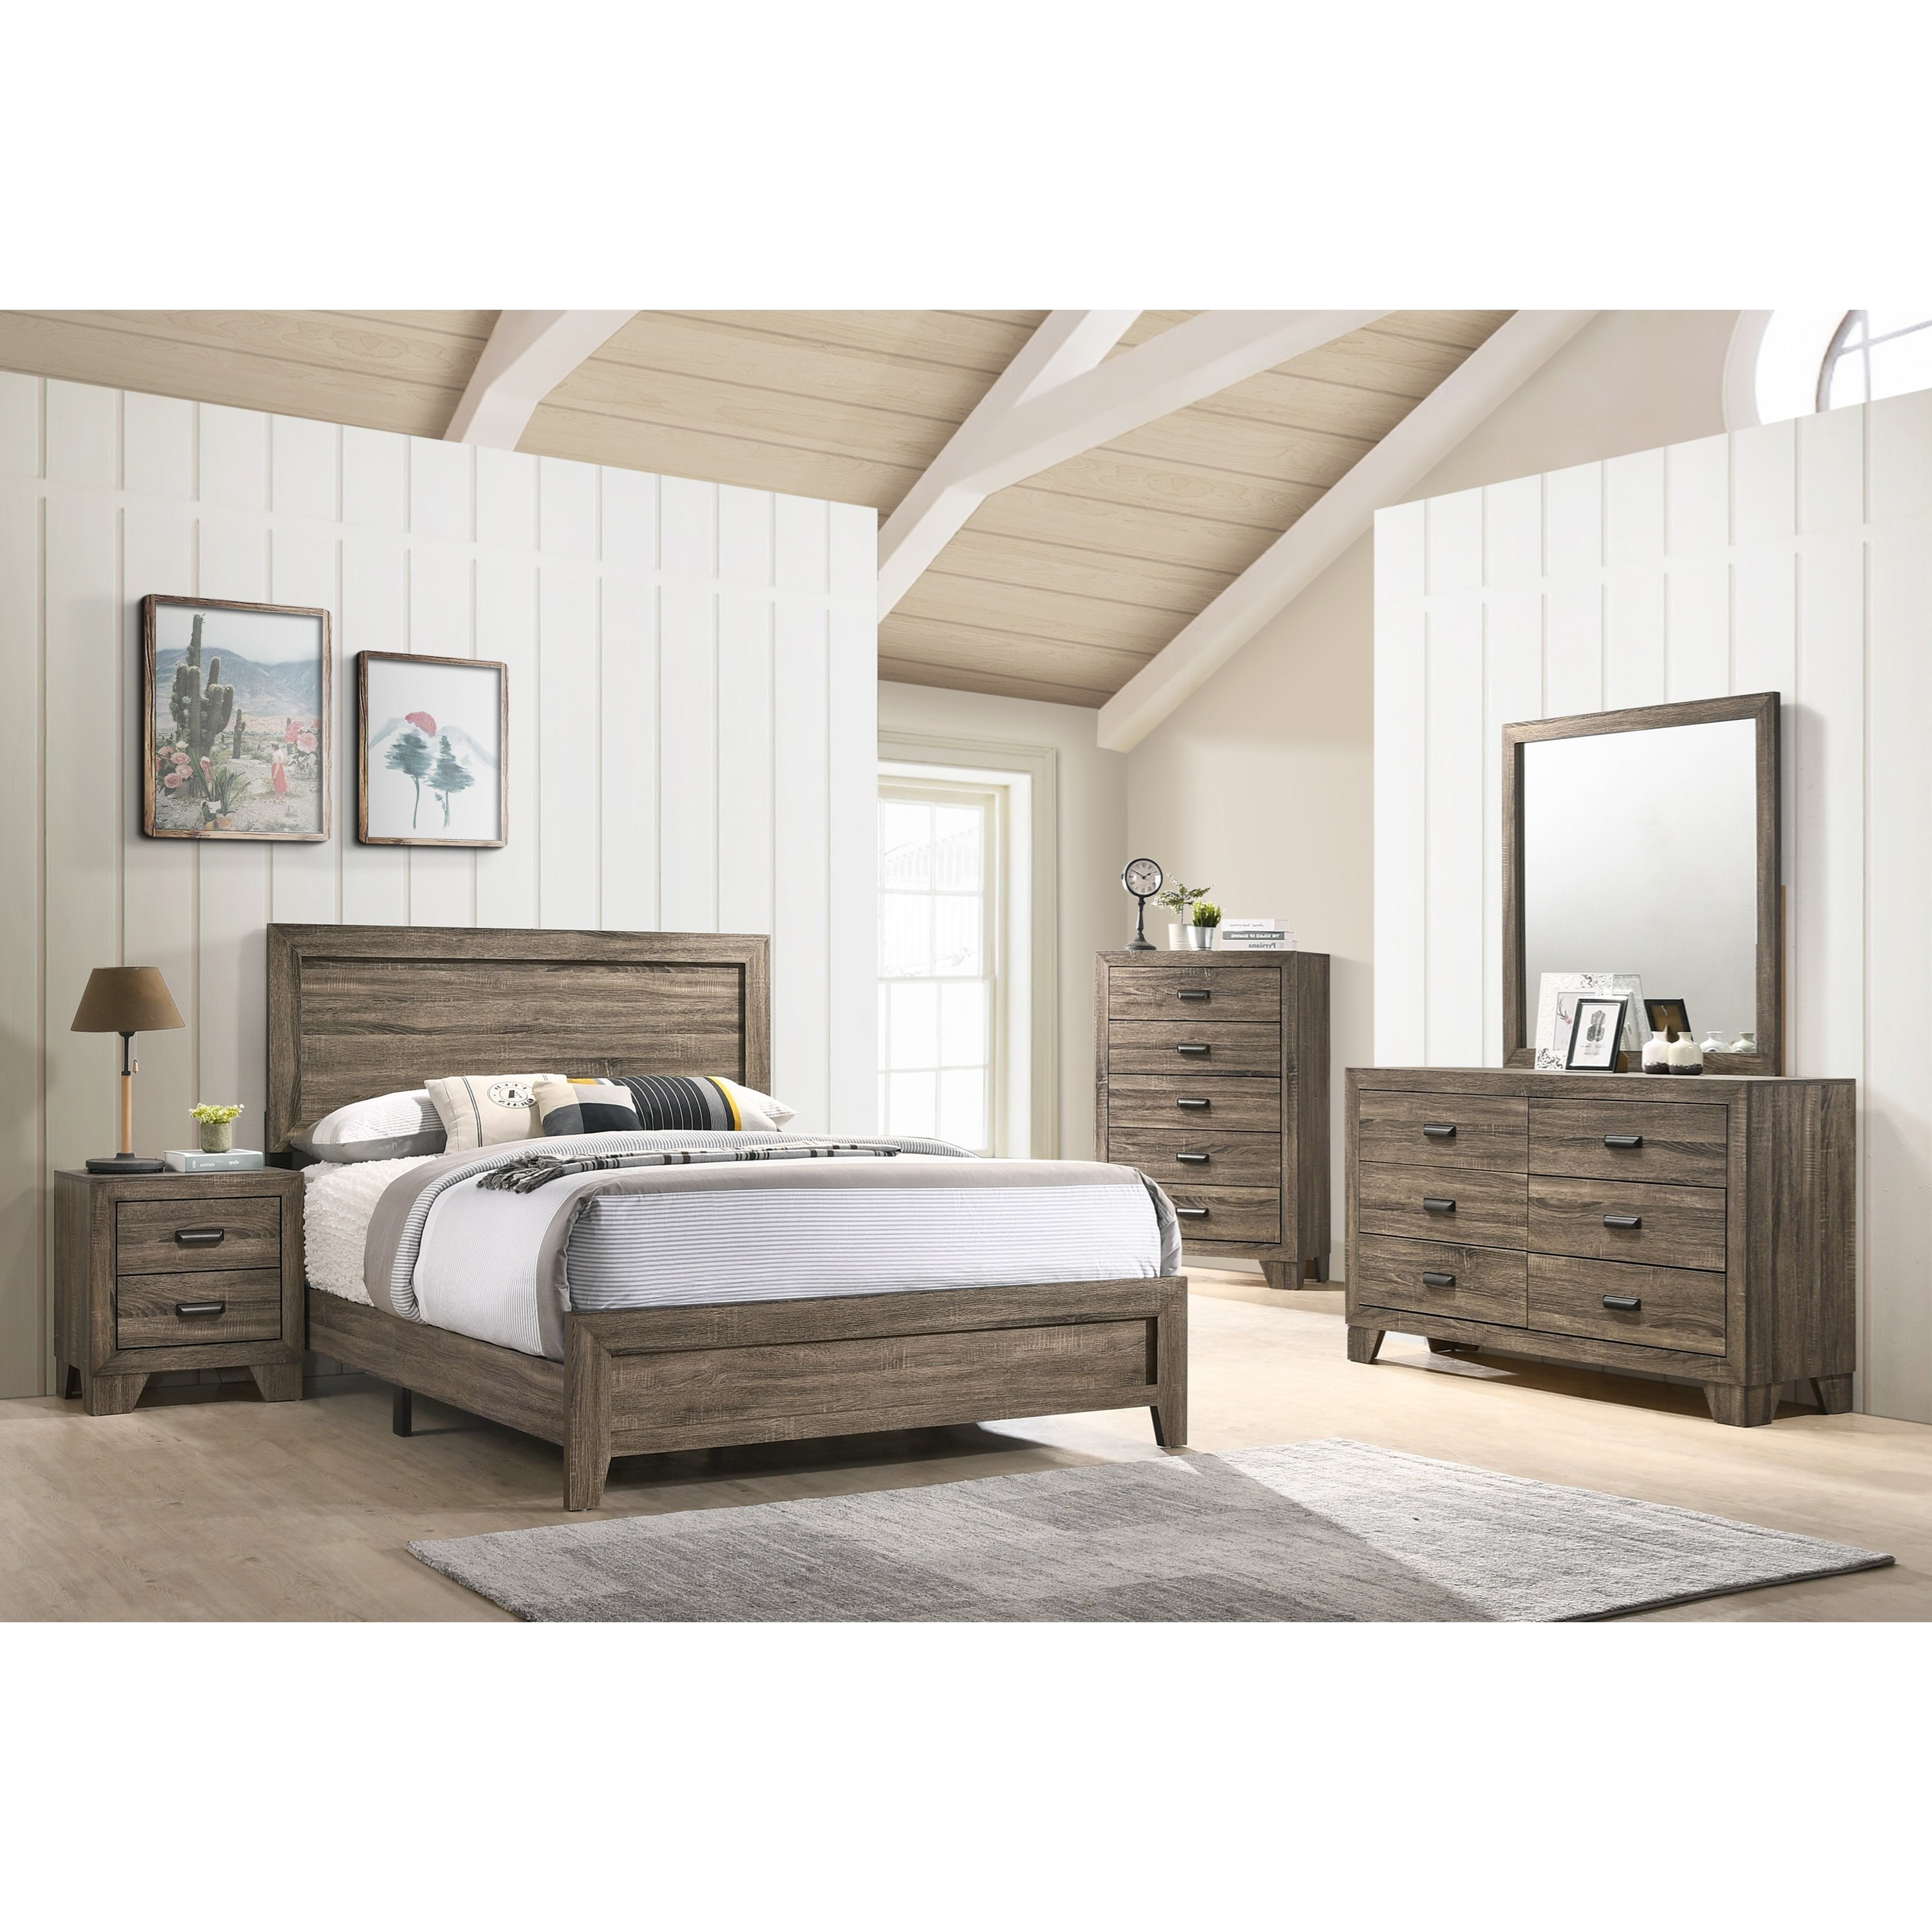 Millie Queen Bedroom Group by Crown Mark at Northeast Factory Direct